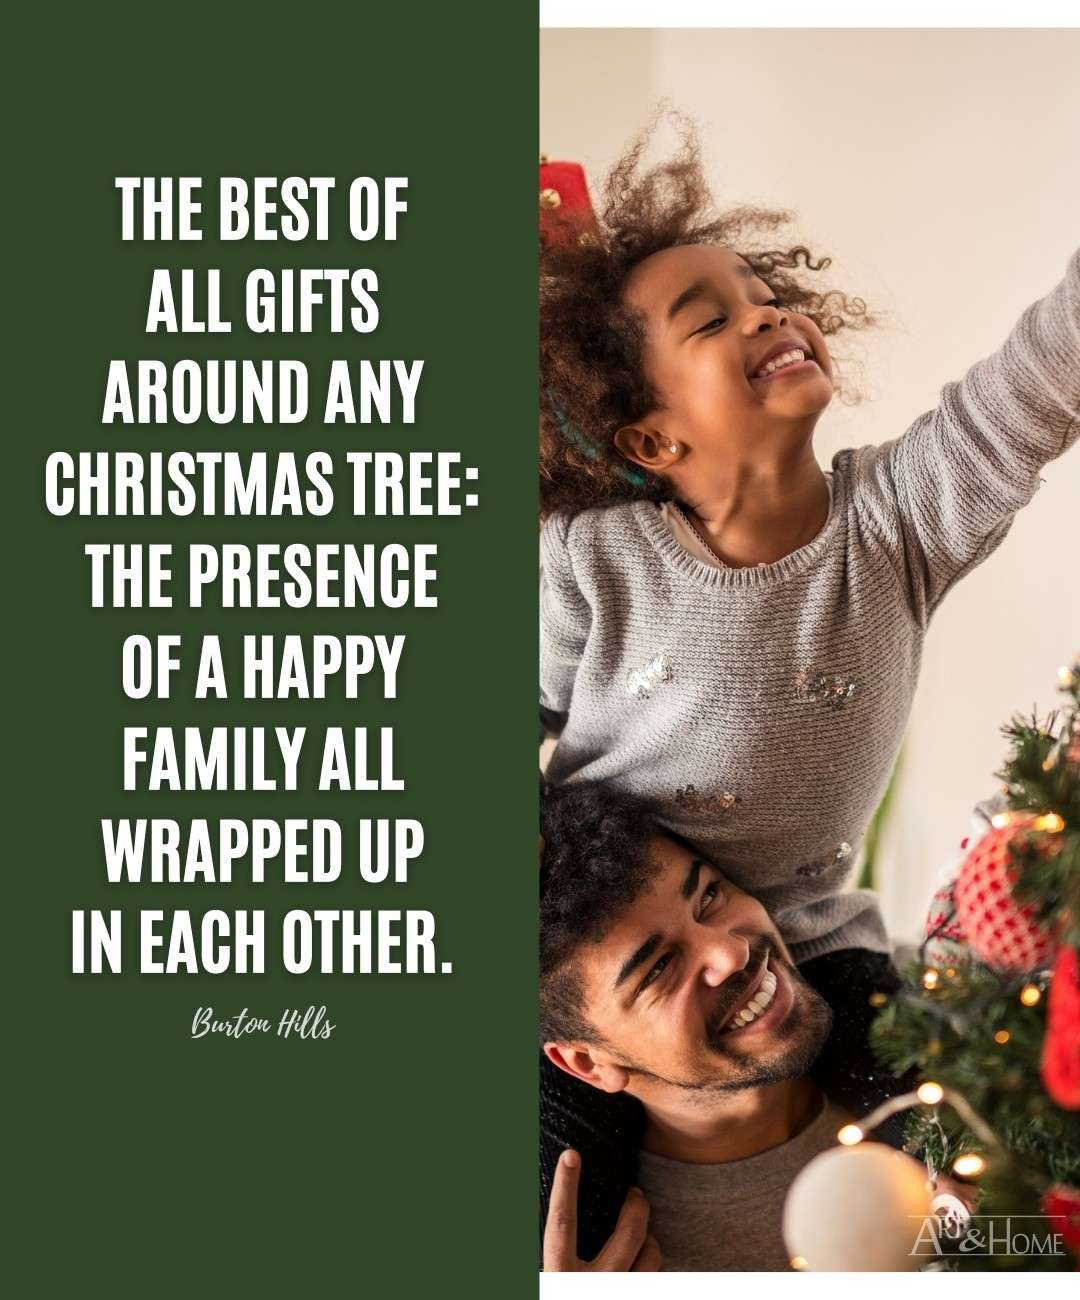 The best of all gifts around any Christmas tree: the presence of a happy family all wrapped up in each other. Burton Hills quote.